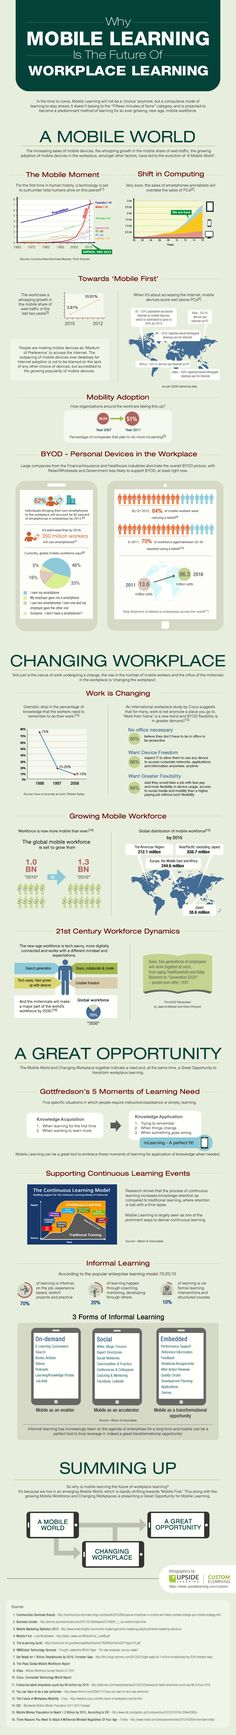 Why Mobile Learning Is The Future Of Workplace Learning Infographic shows factors which present a Great Opportunity for Mobile Learning in Workplace.